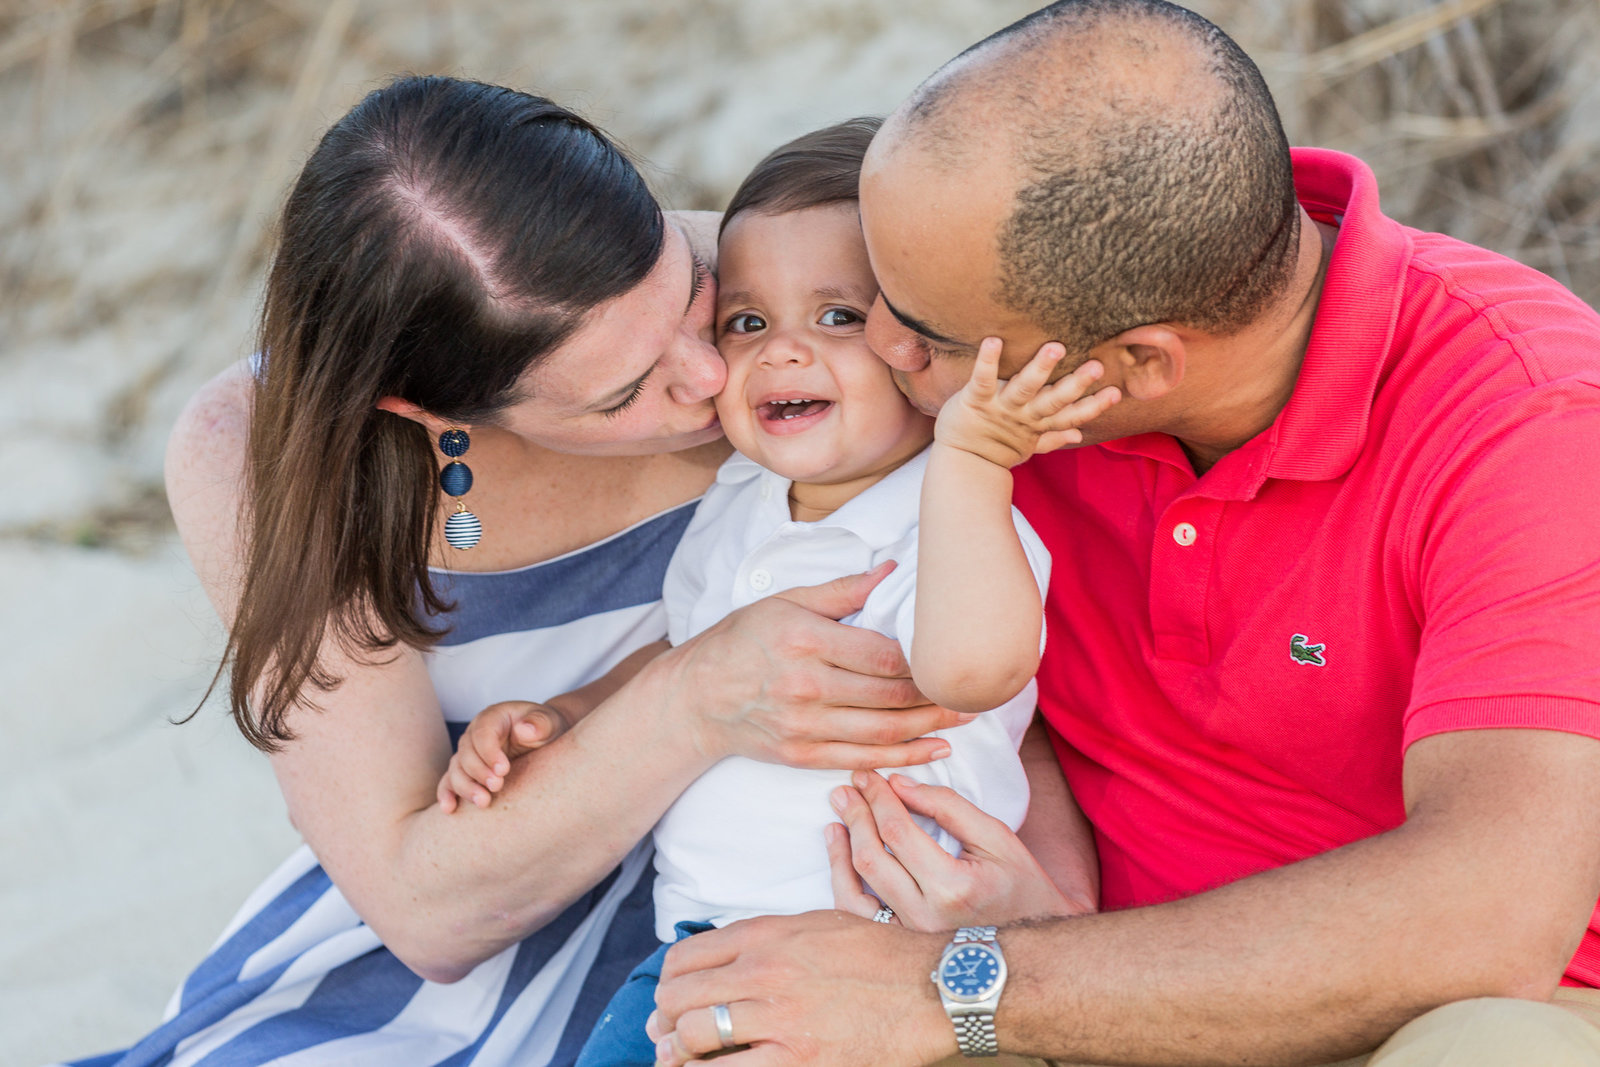 Brewster_CapeCodFamilyPortraits_Michelle Kaye Photography-1